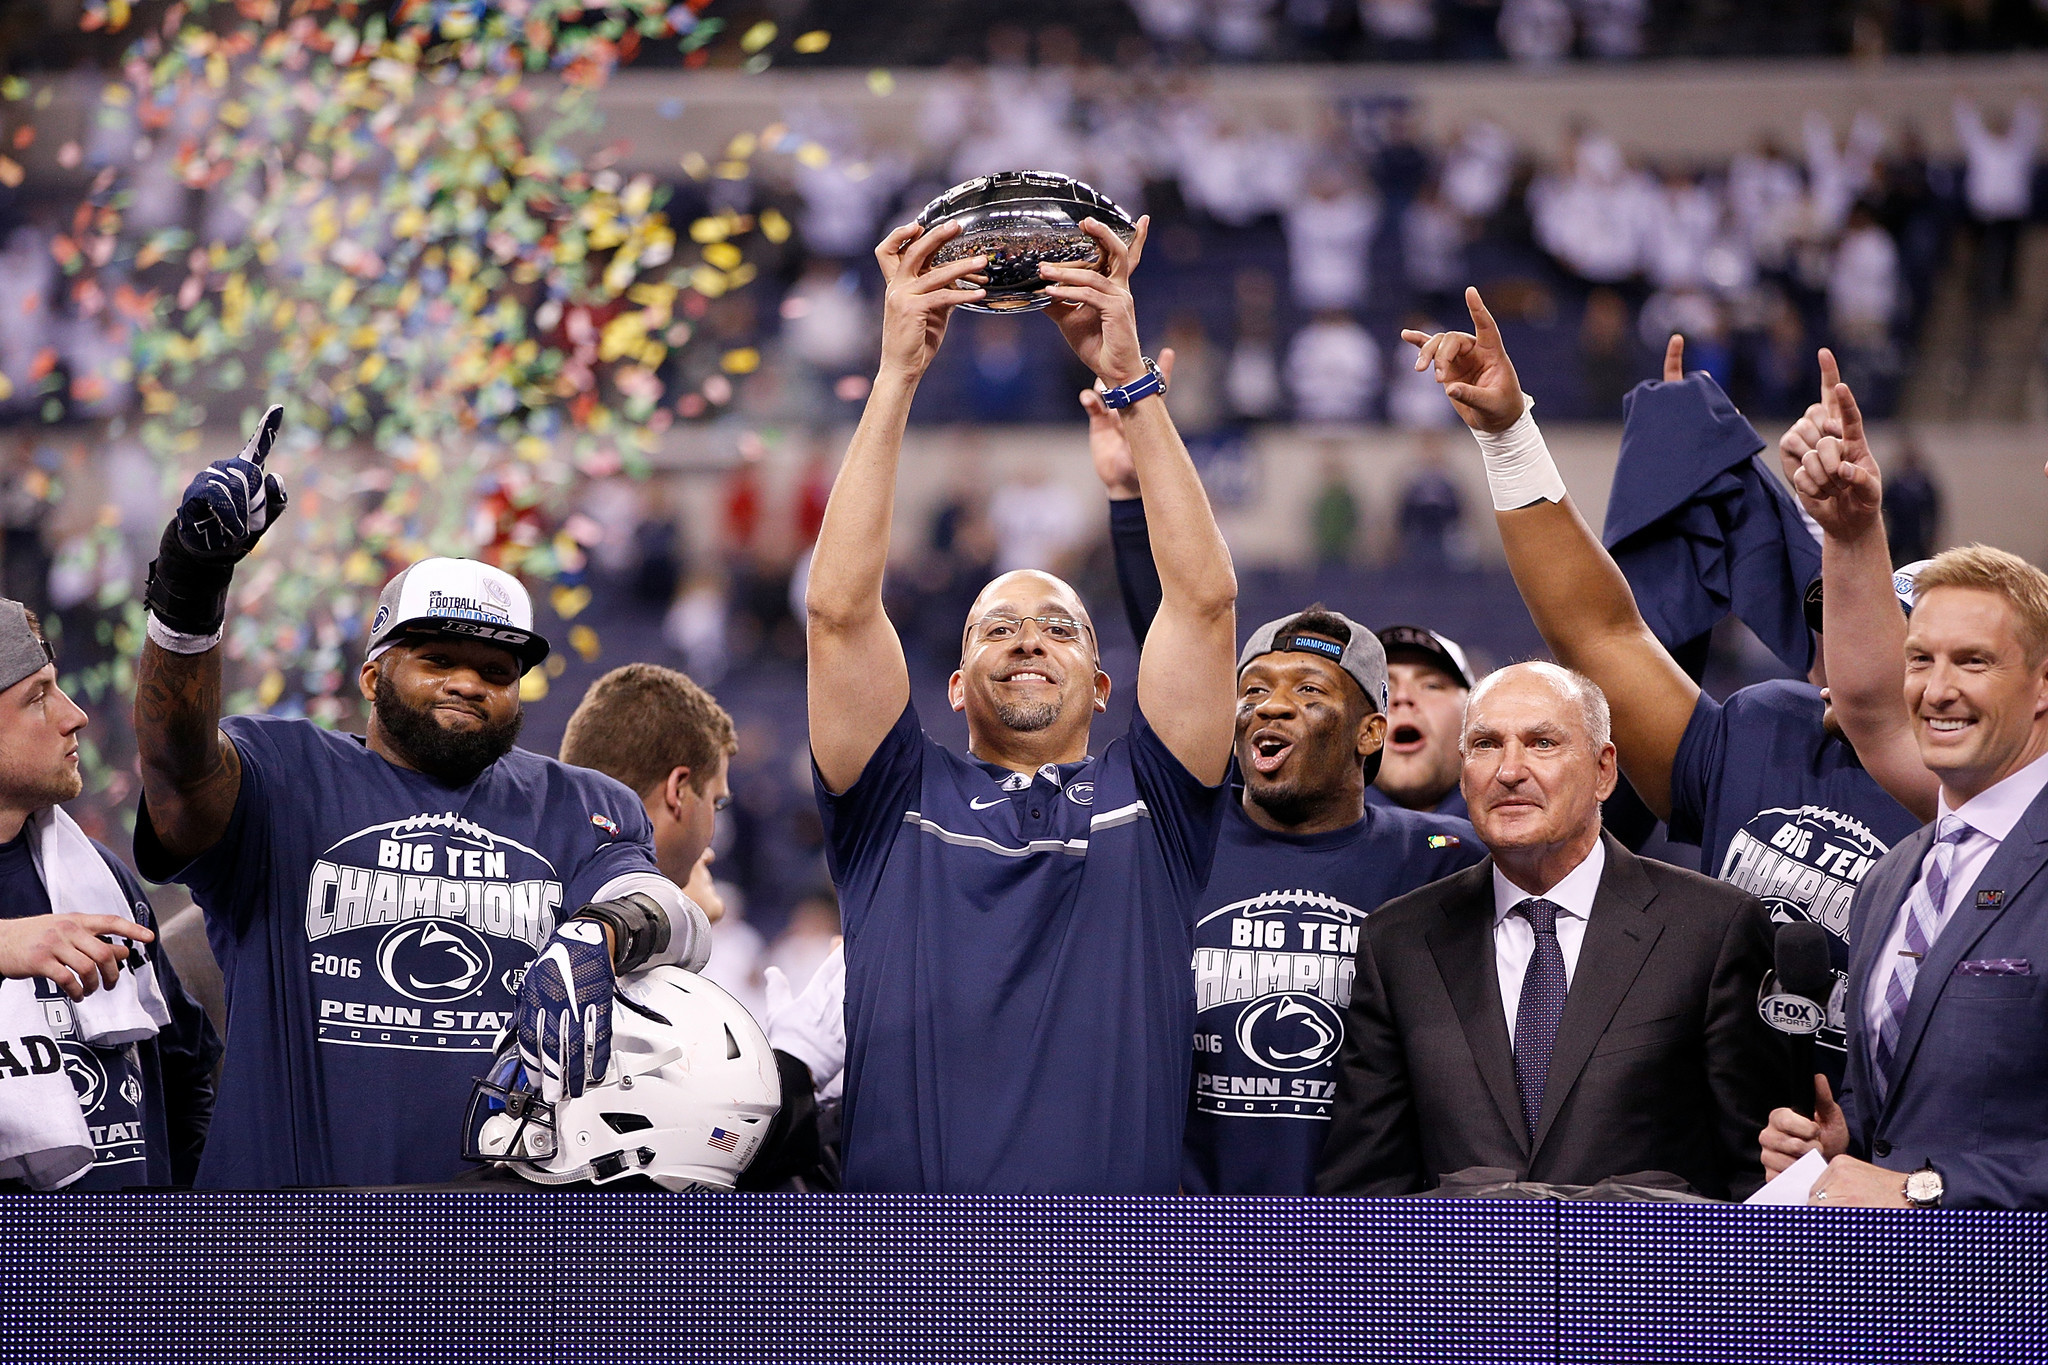 Mc-penn-state-football-recruiting-early-enrollees